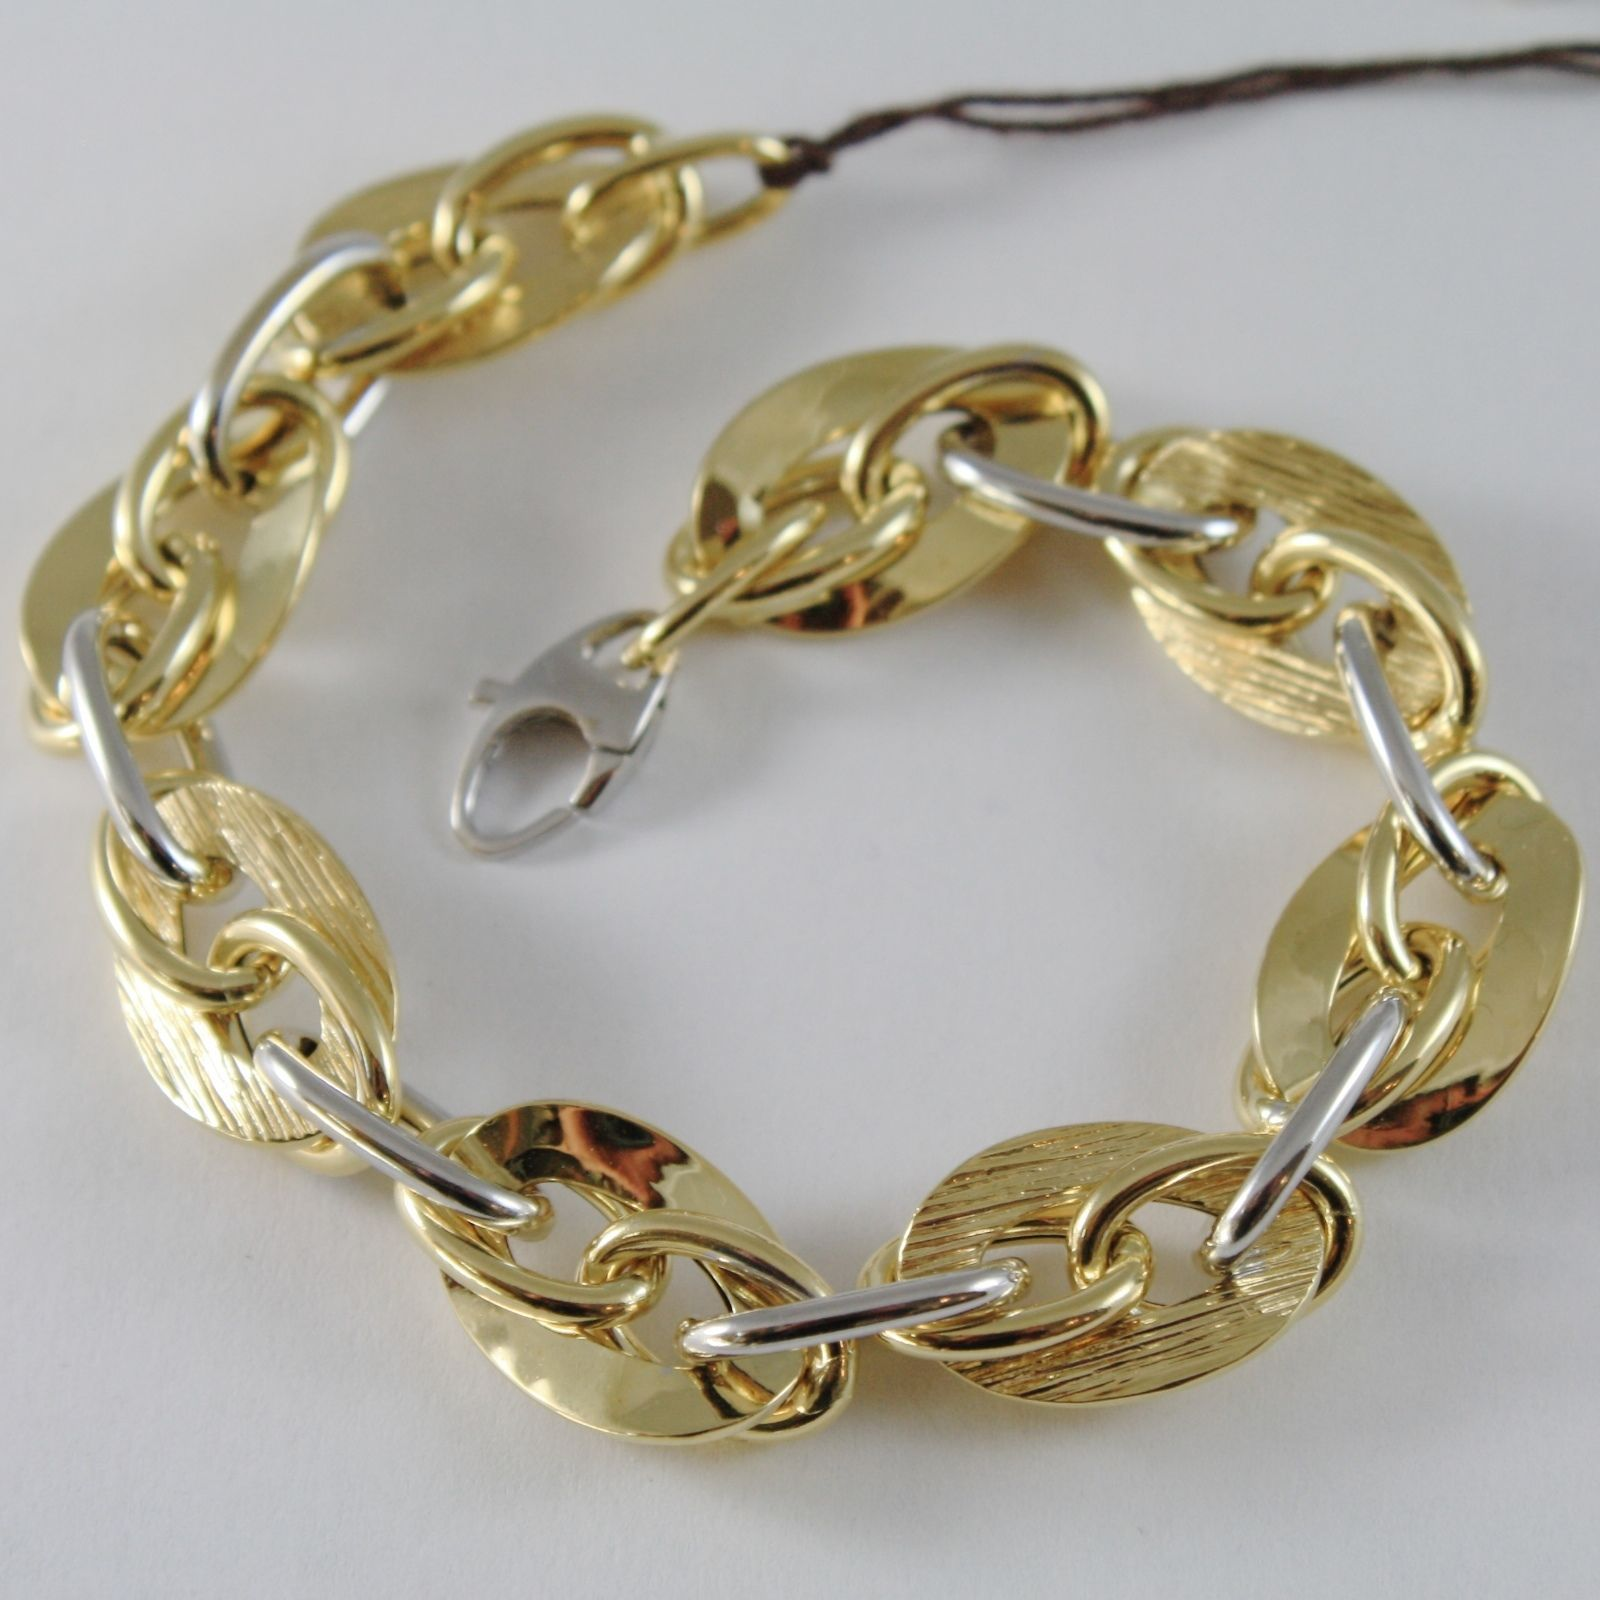 18K YELLOW WHITE GOLD BRACELET DOUBLE BIG OVAL WORKED ROPE LINK, MADE IN ITALY